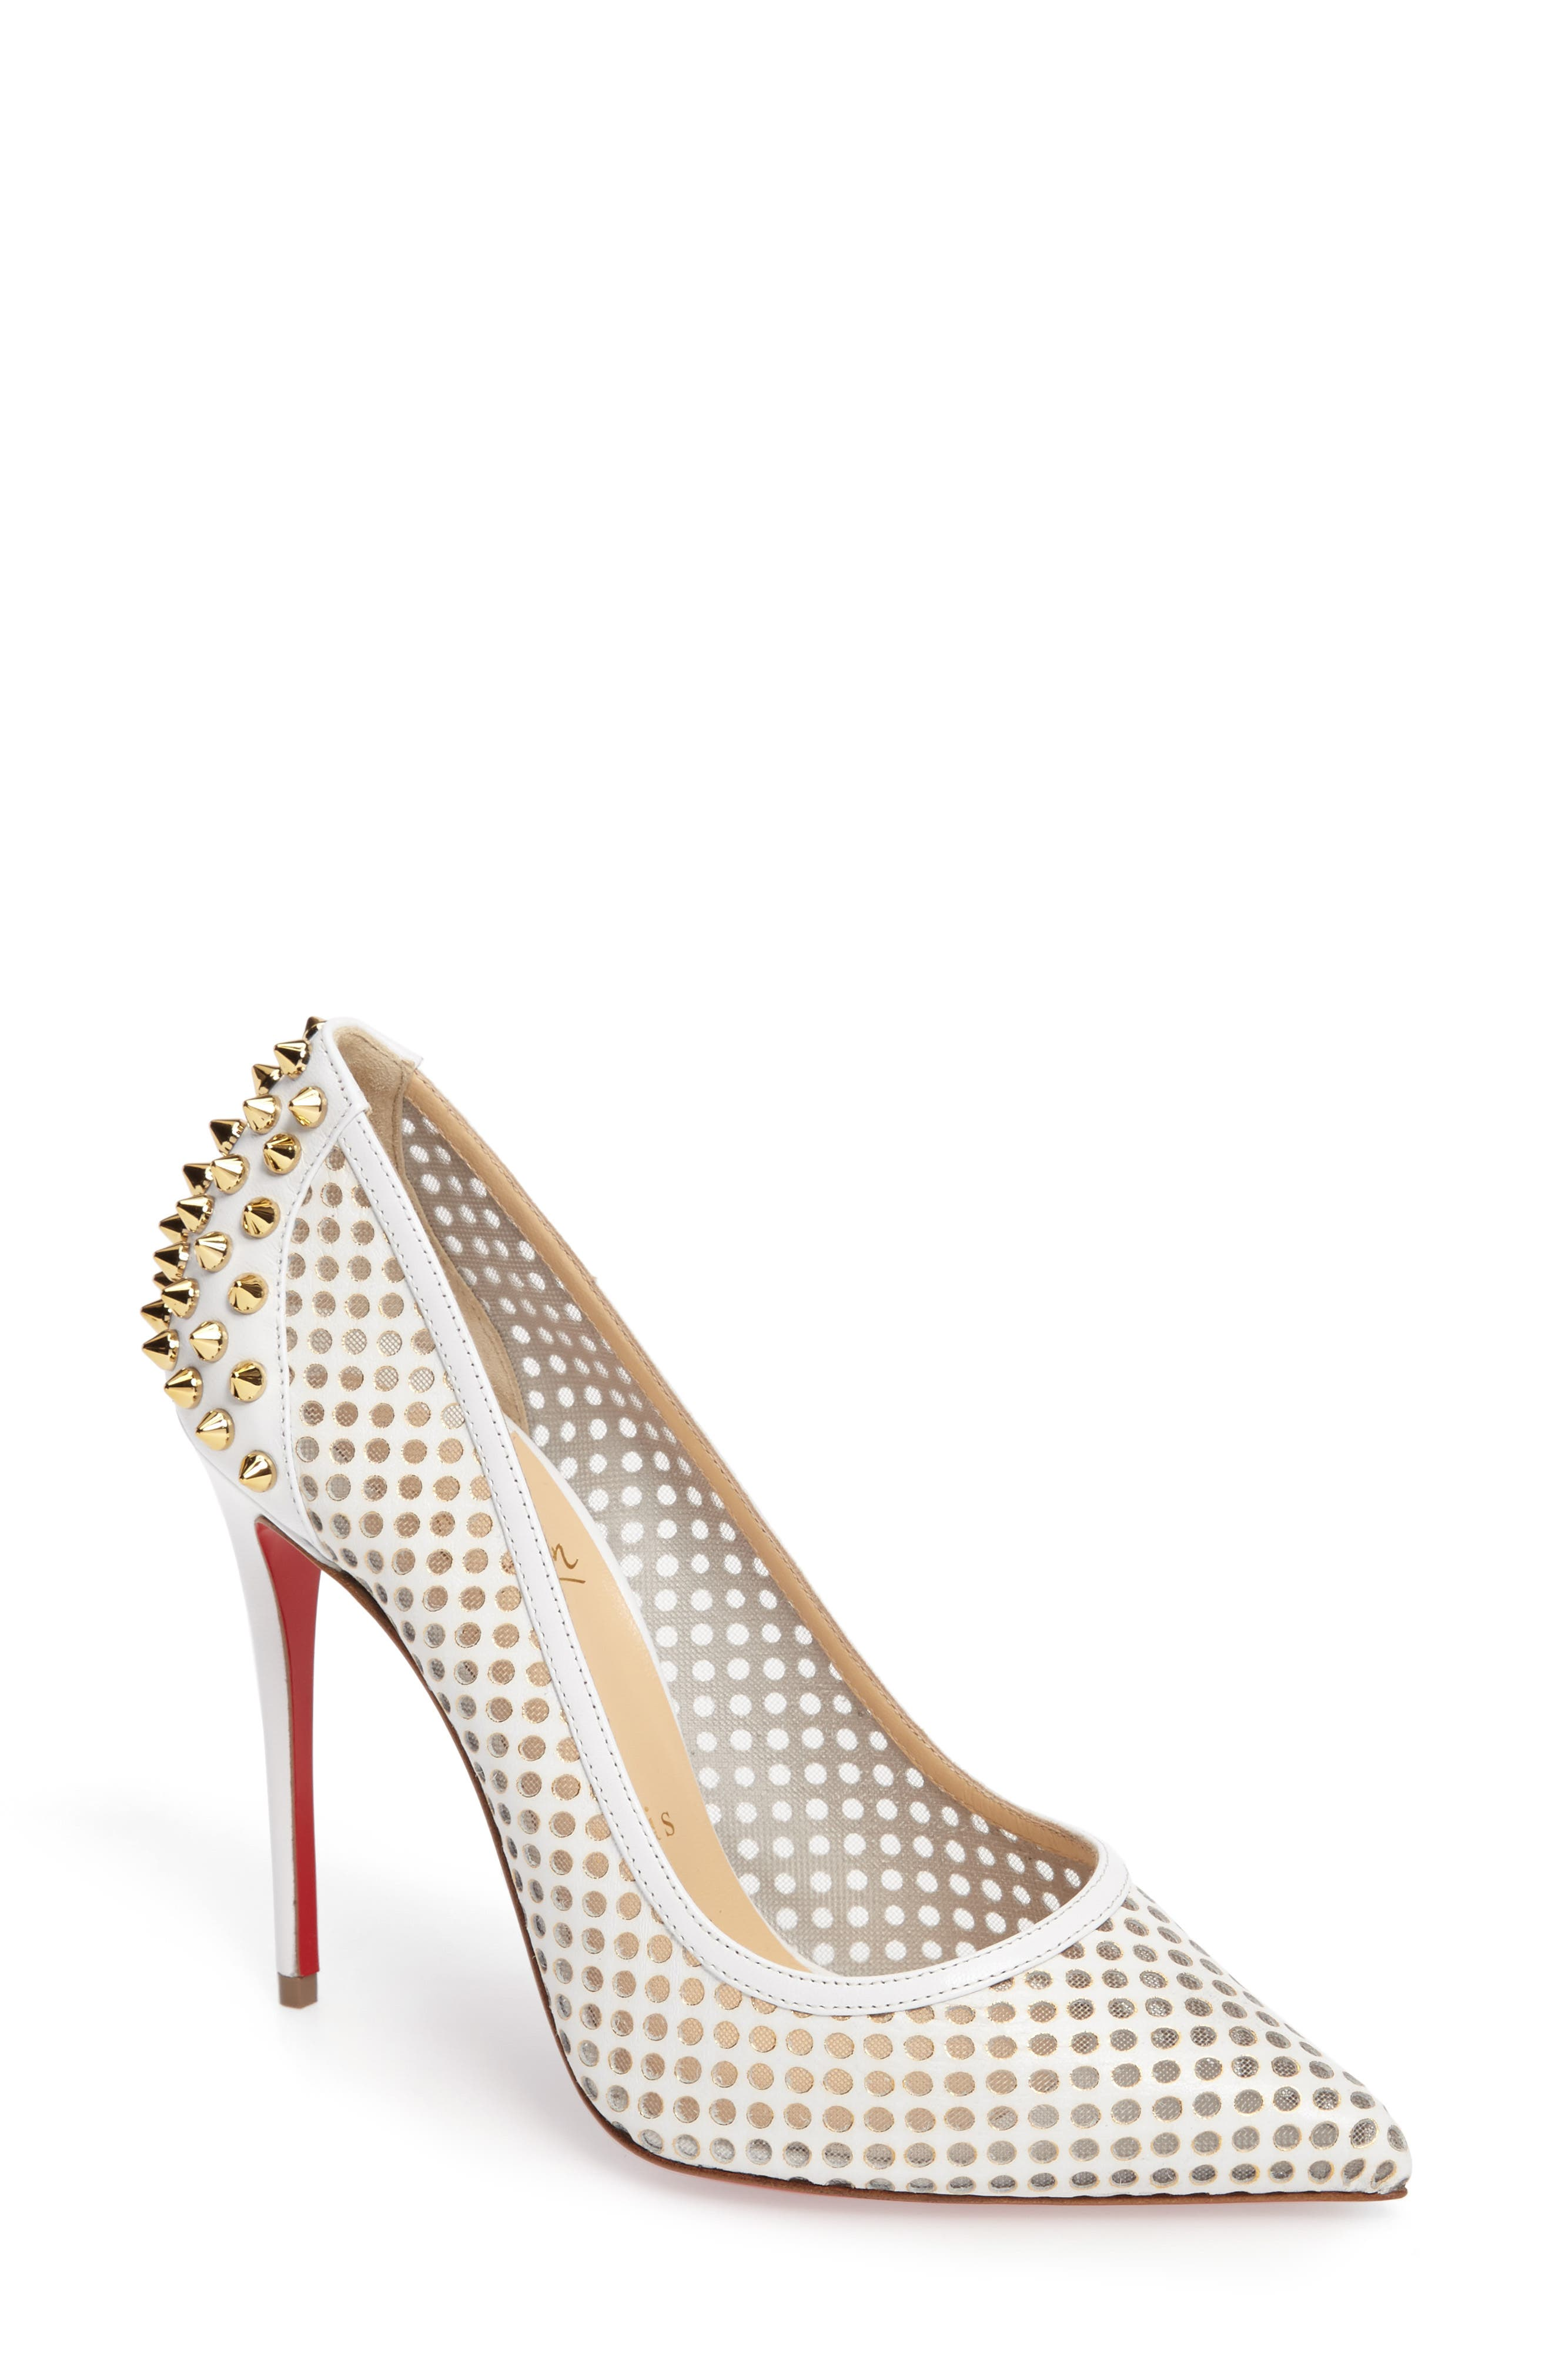 CHRISTIAN LOUBOUTIN 'Guni' Pointy Toe Pump